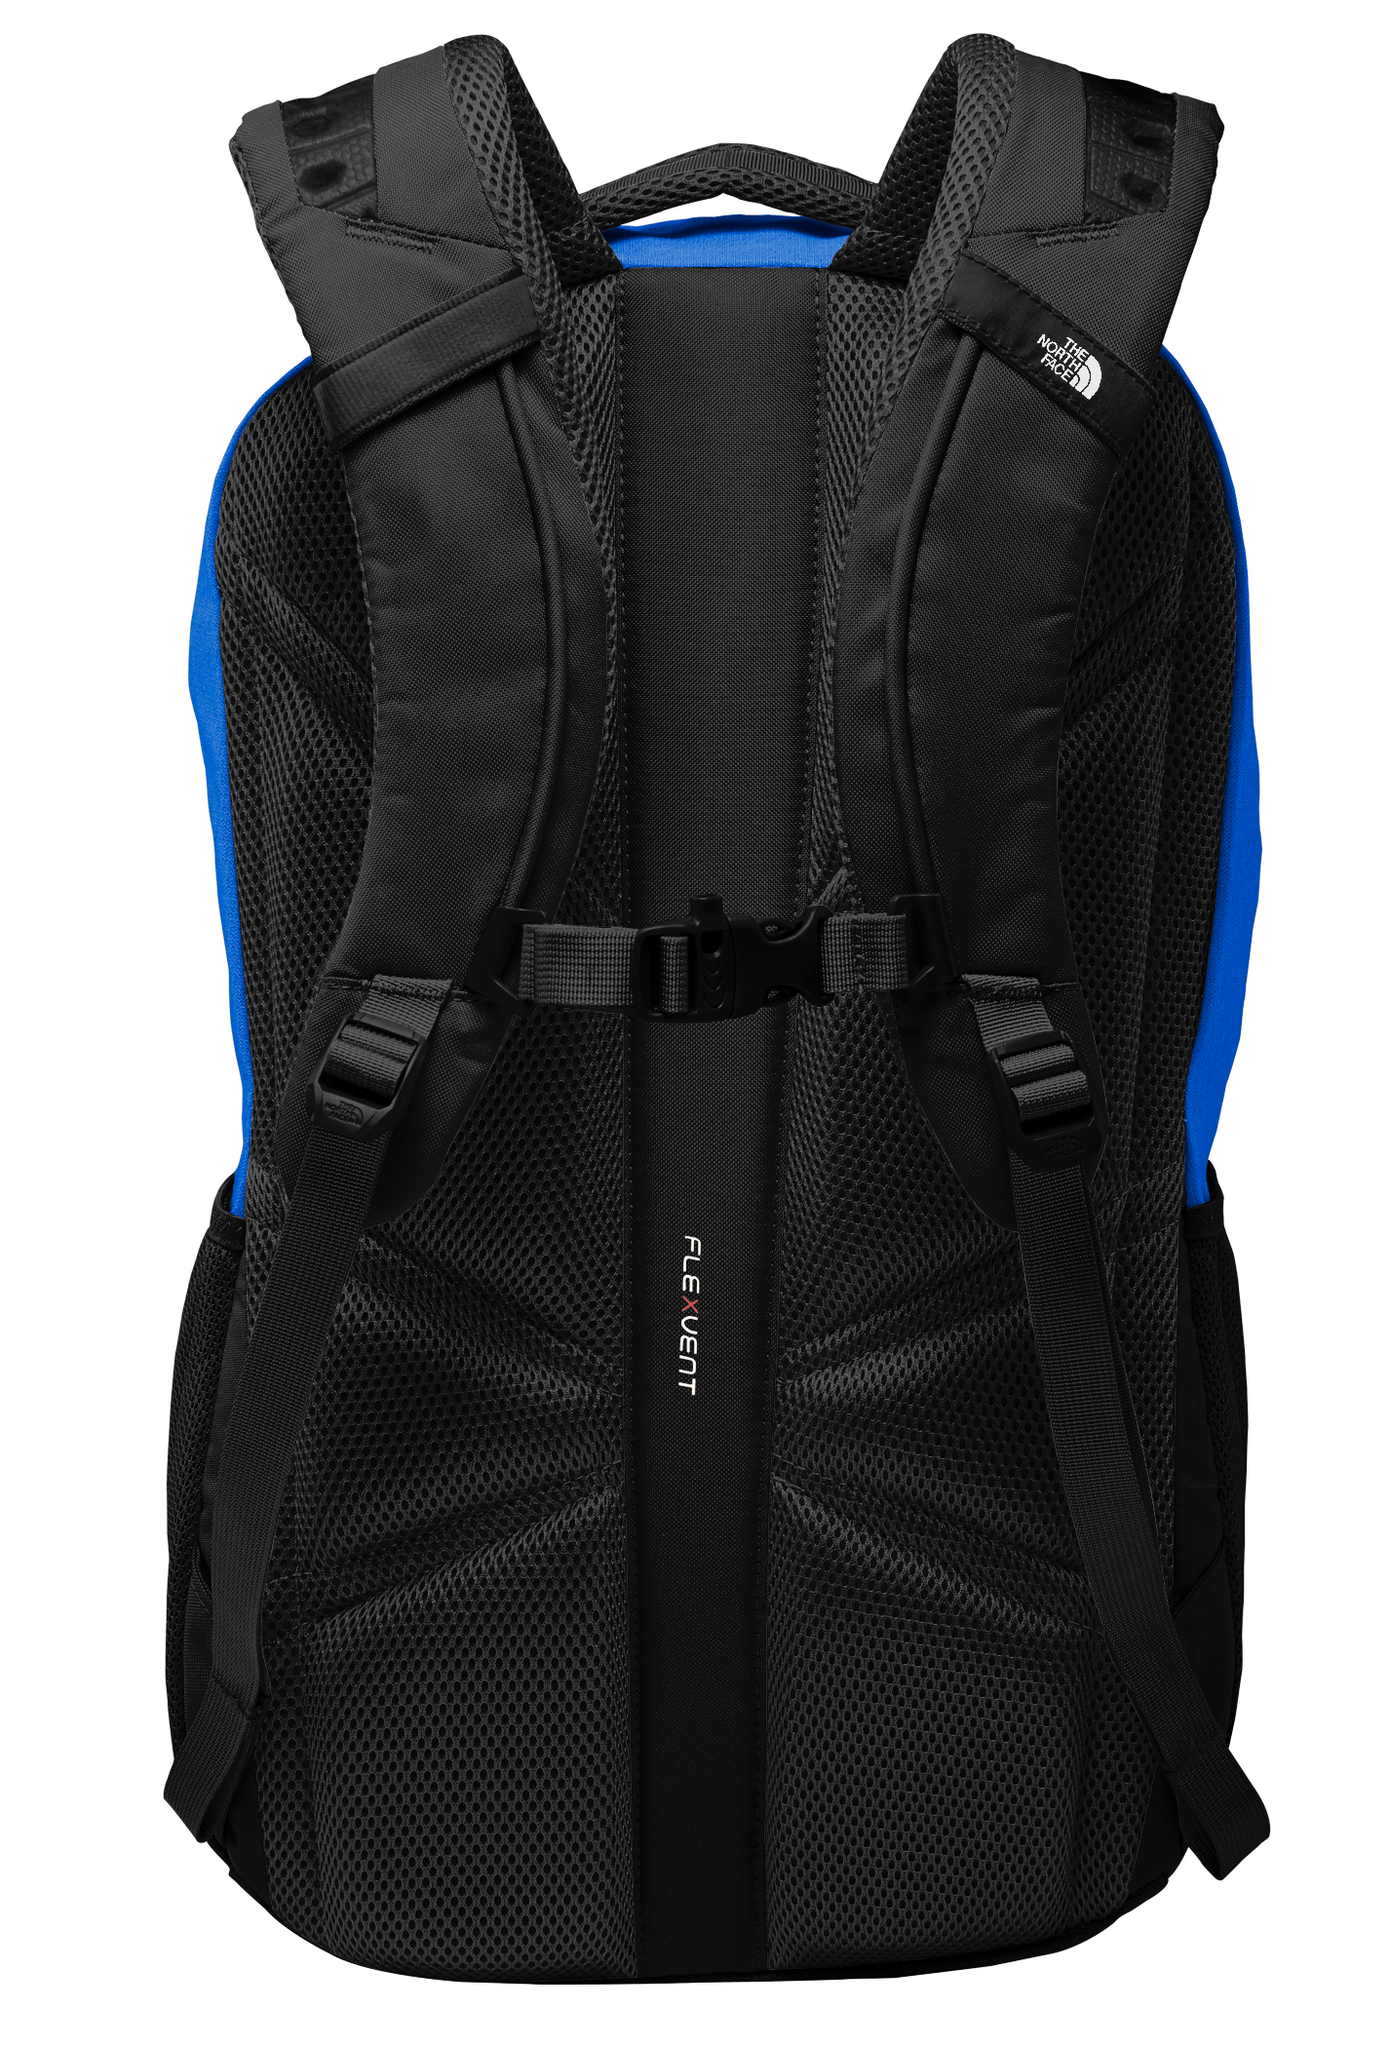 bf5919cab8 The North Face [NF0A3KX8] Connector Backpack – The Corporate Gift Store